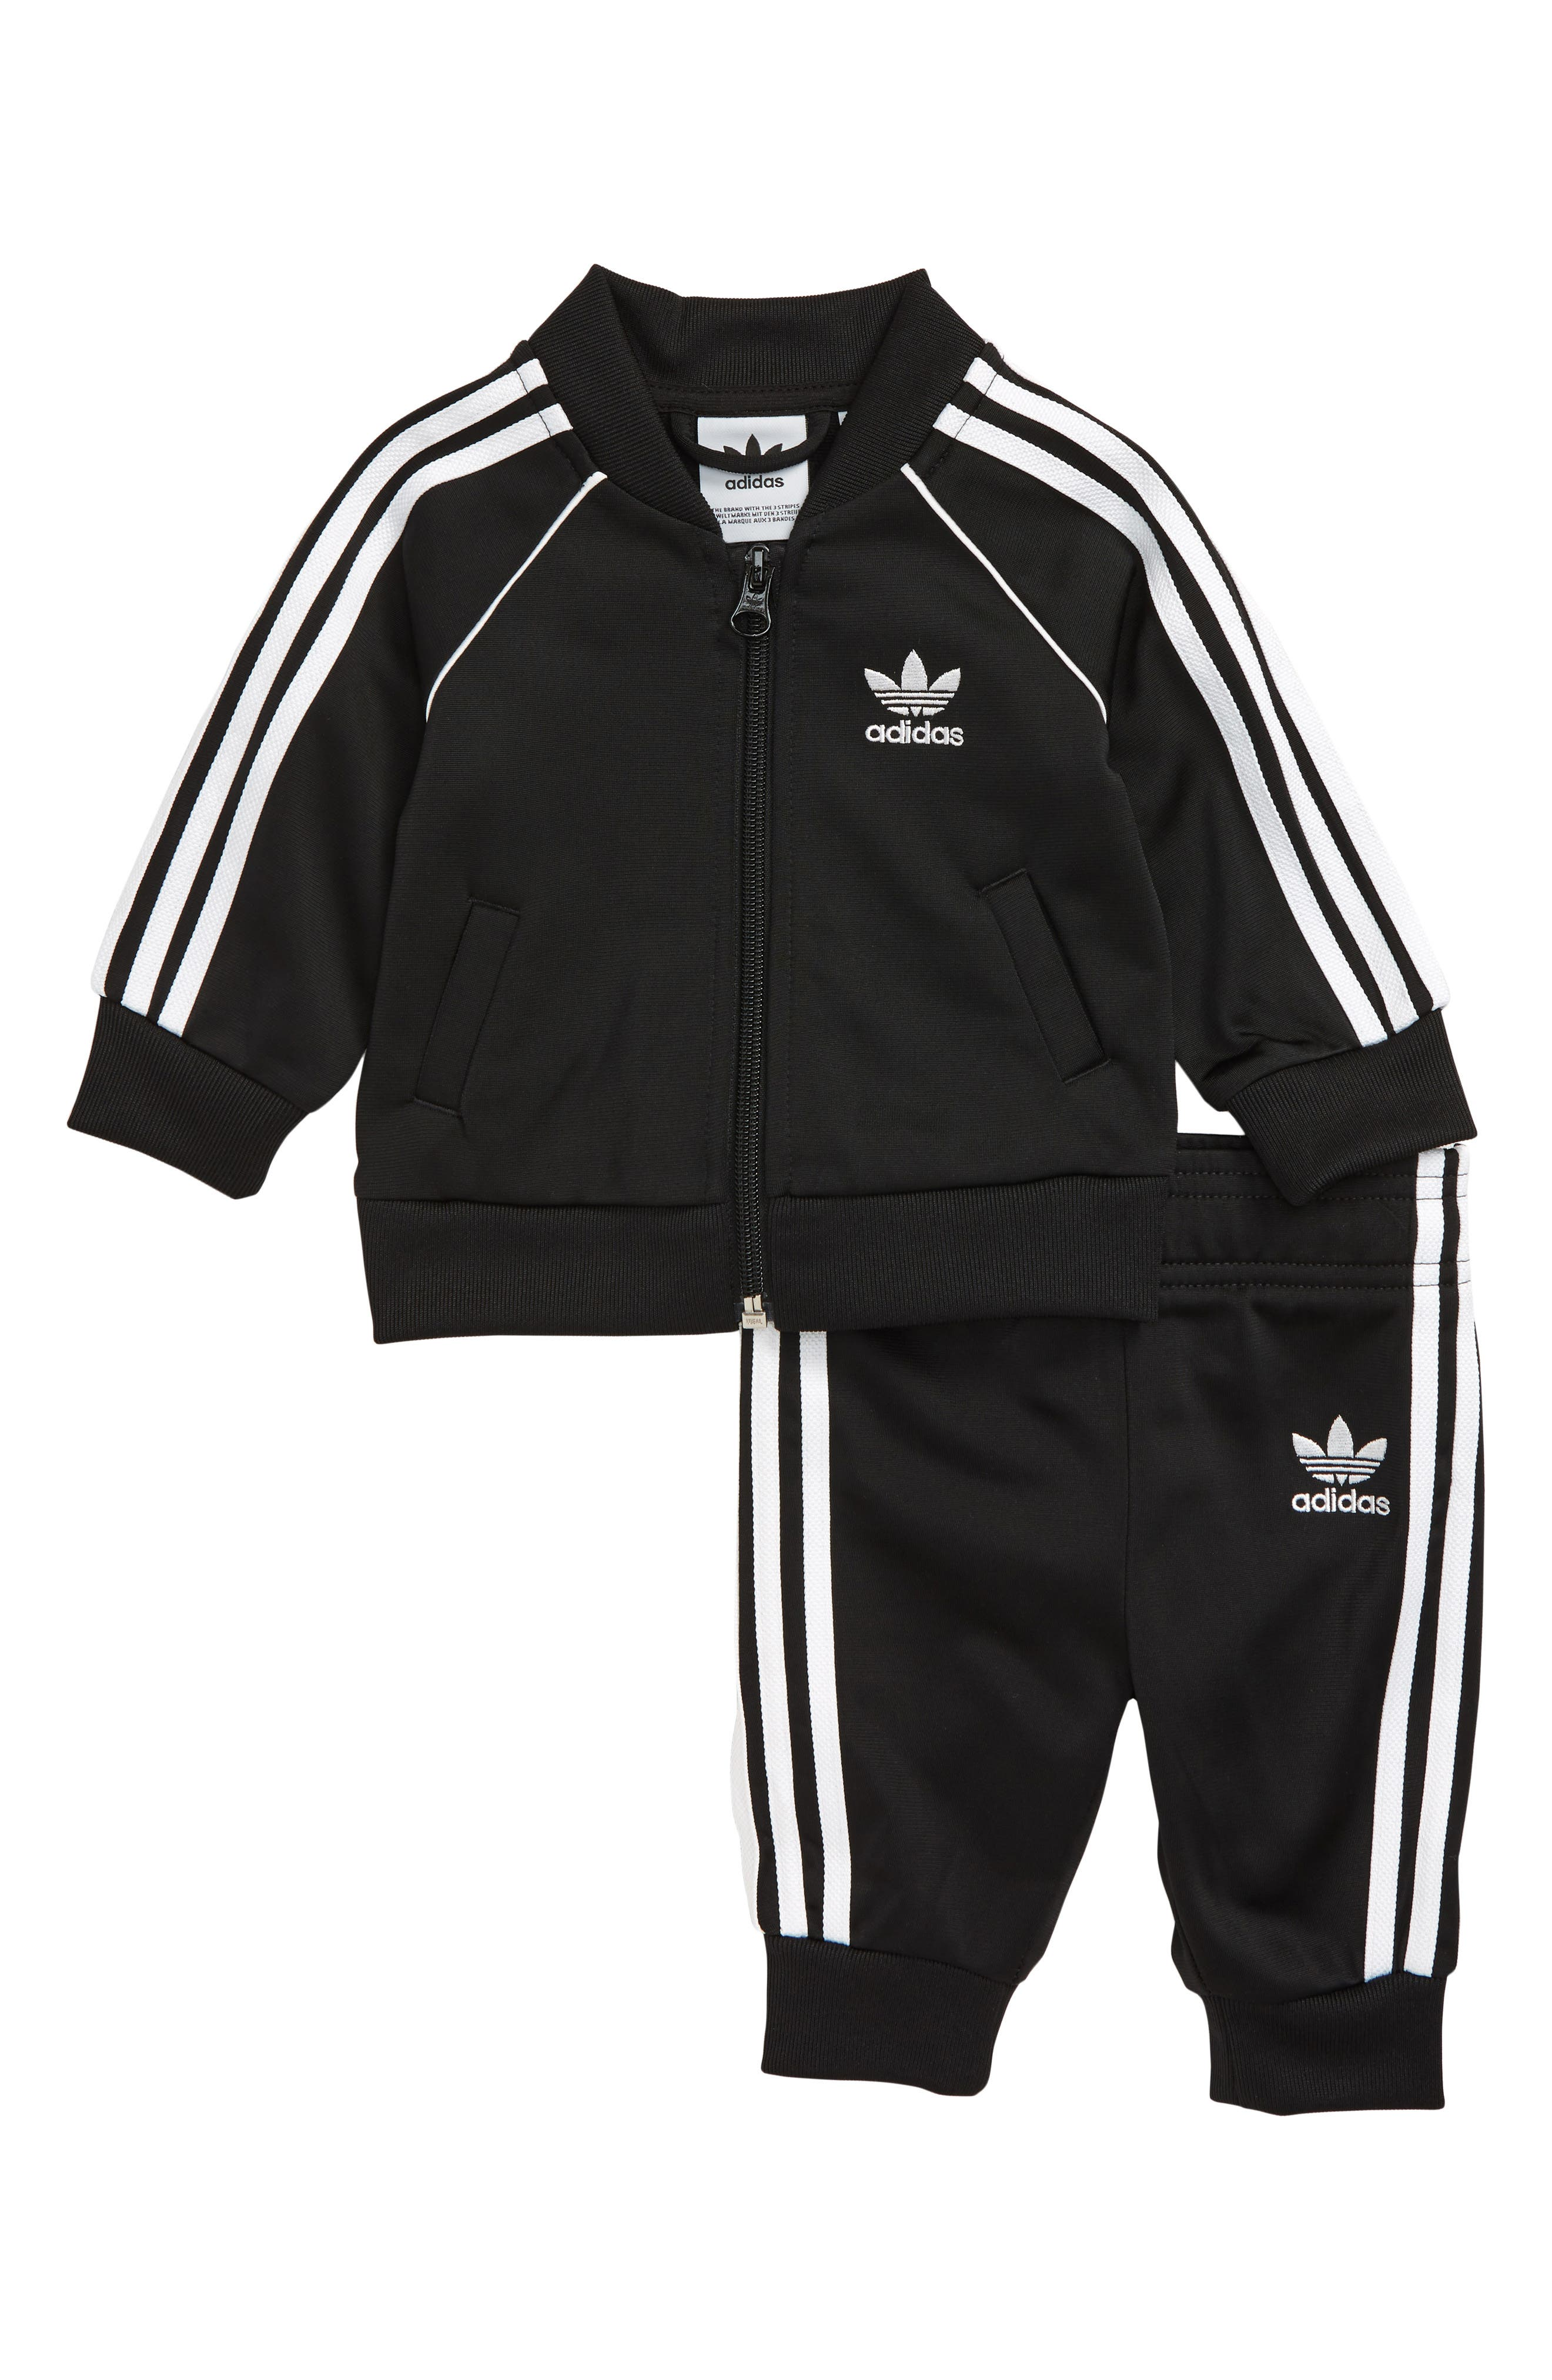 Adidas Baby Clothing, Shoes, & Accessories | Nordstrom